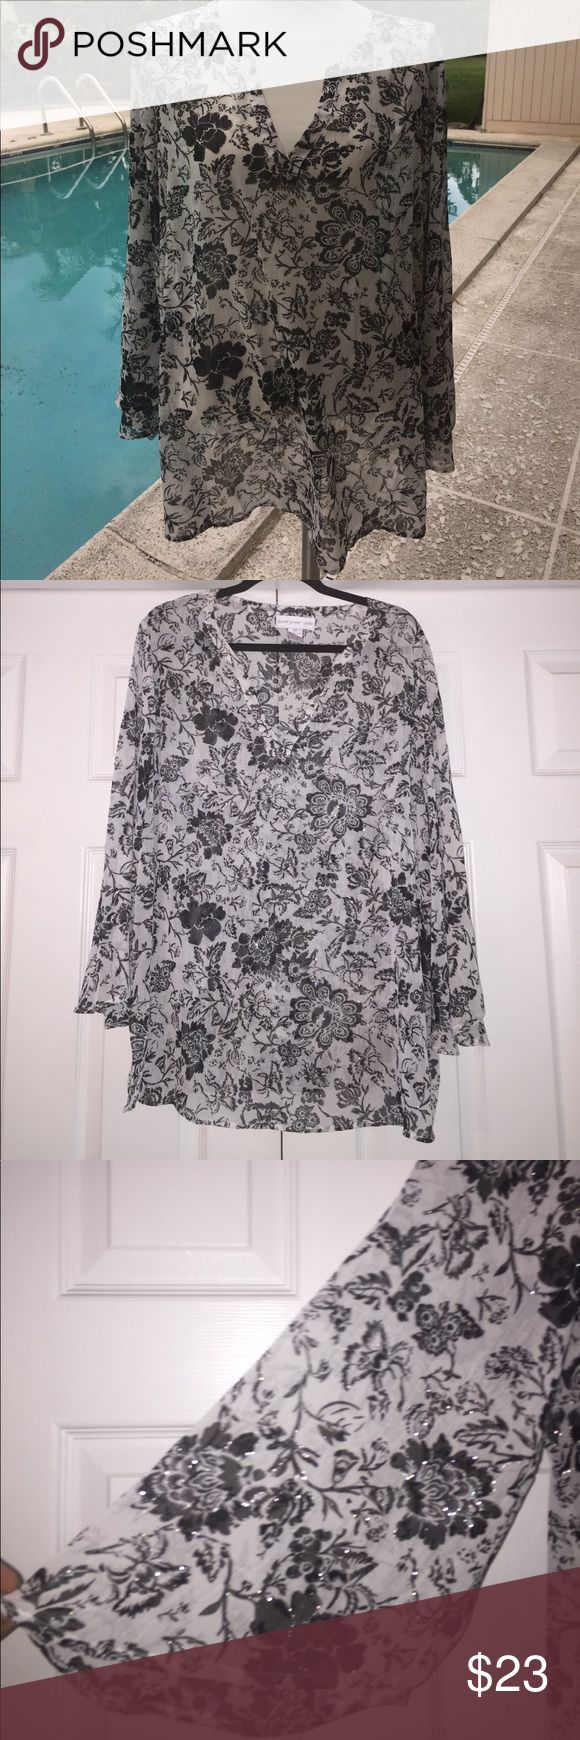 "Susan Graver TUNIC size 2x coverup or blouse Susan Graver TUNIC size 2x coverup or blouse ... excellent condition ... perfect for pool, beach or cruise... black, white and silver floral.... splits-neck with 6"" slurs up the sides. Gorgeous.... from smoke-free home. Loose and flowy... bell sleeves. Susan Graver Tops Tunics"